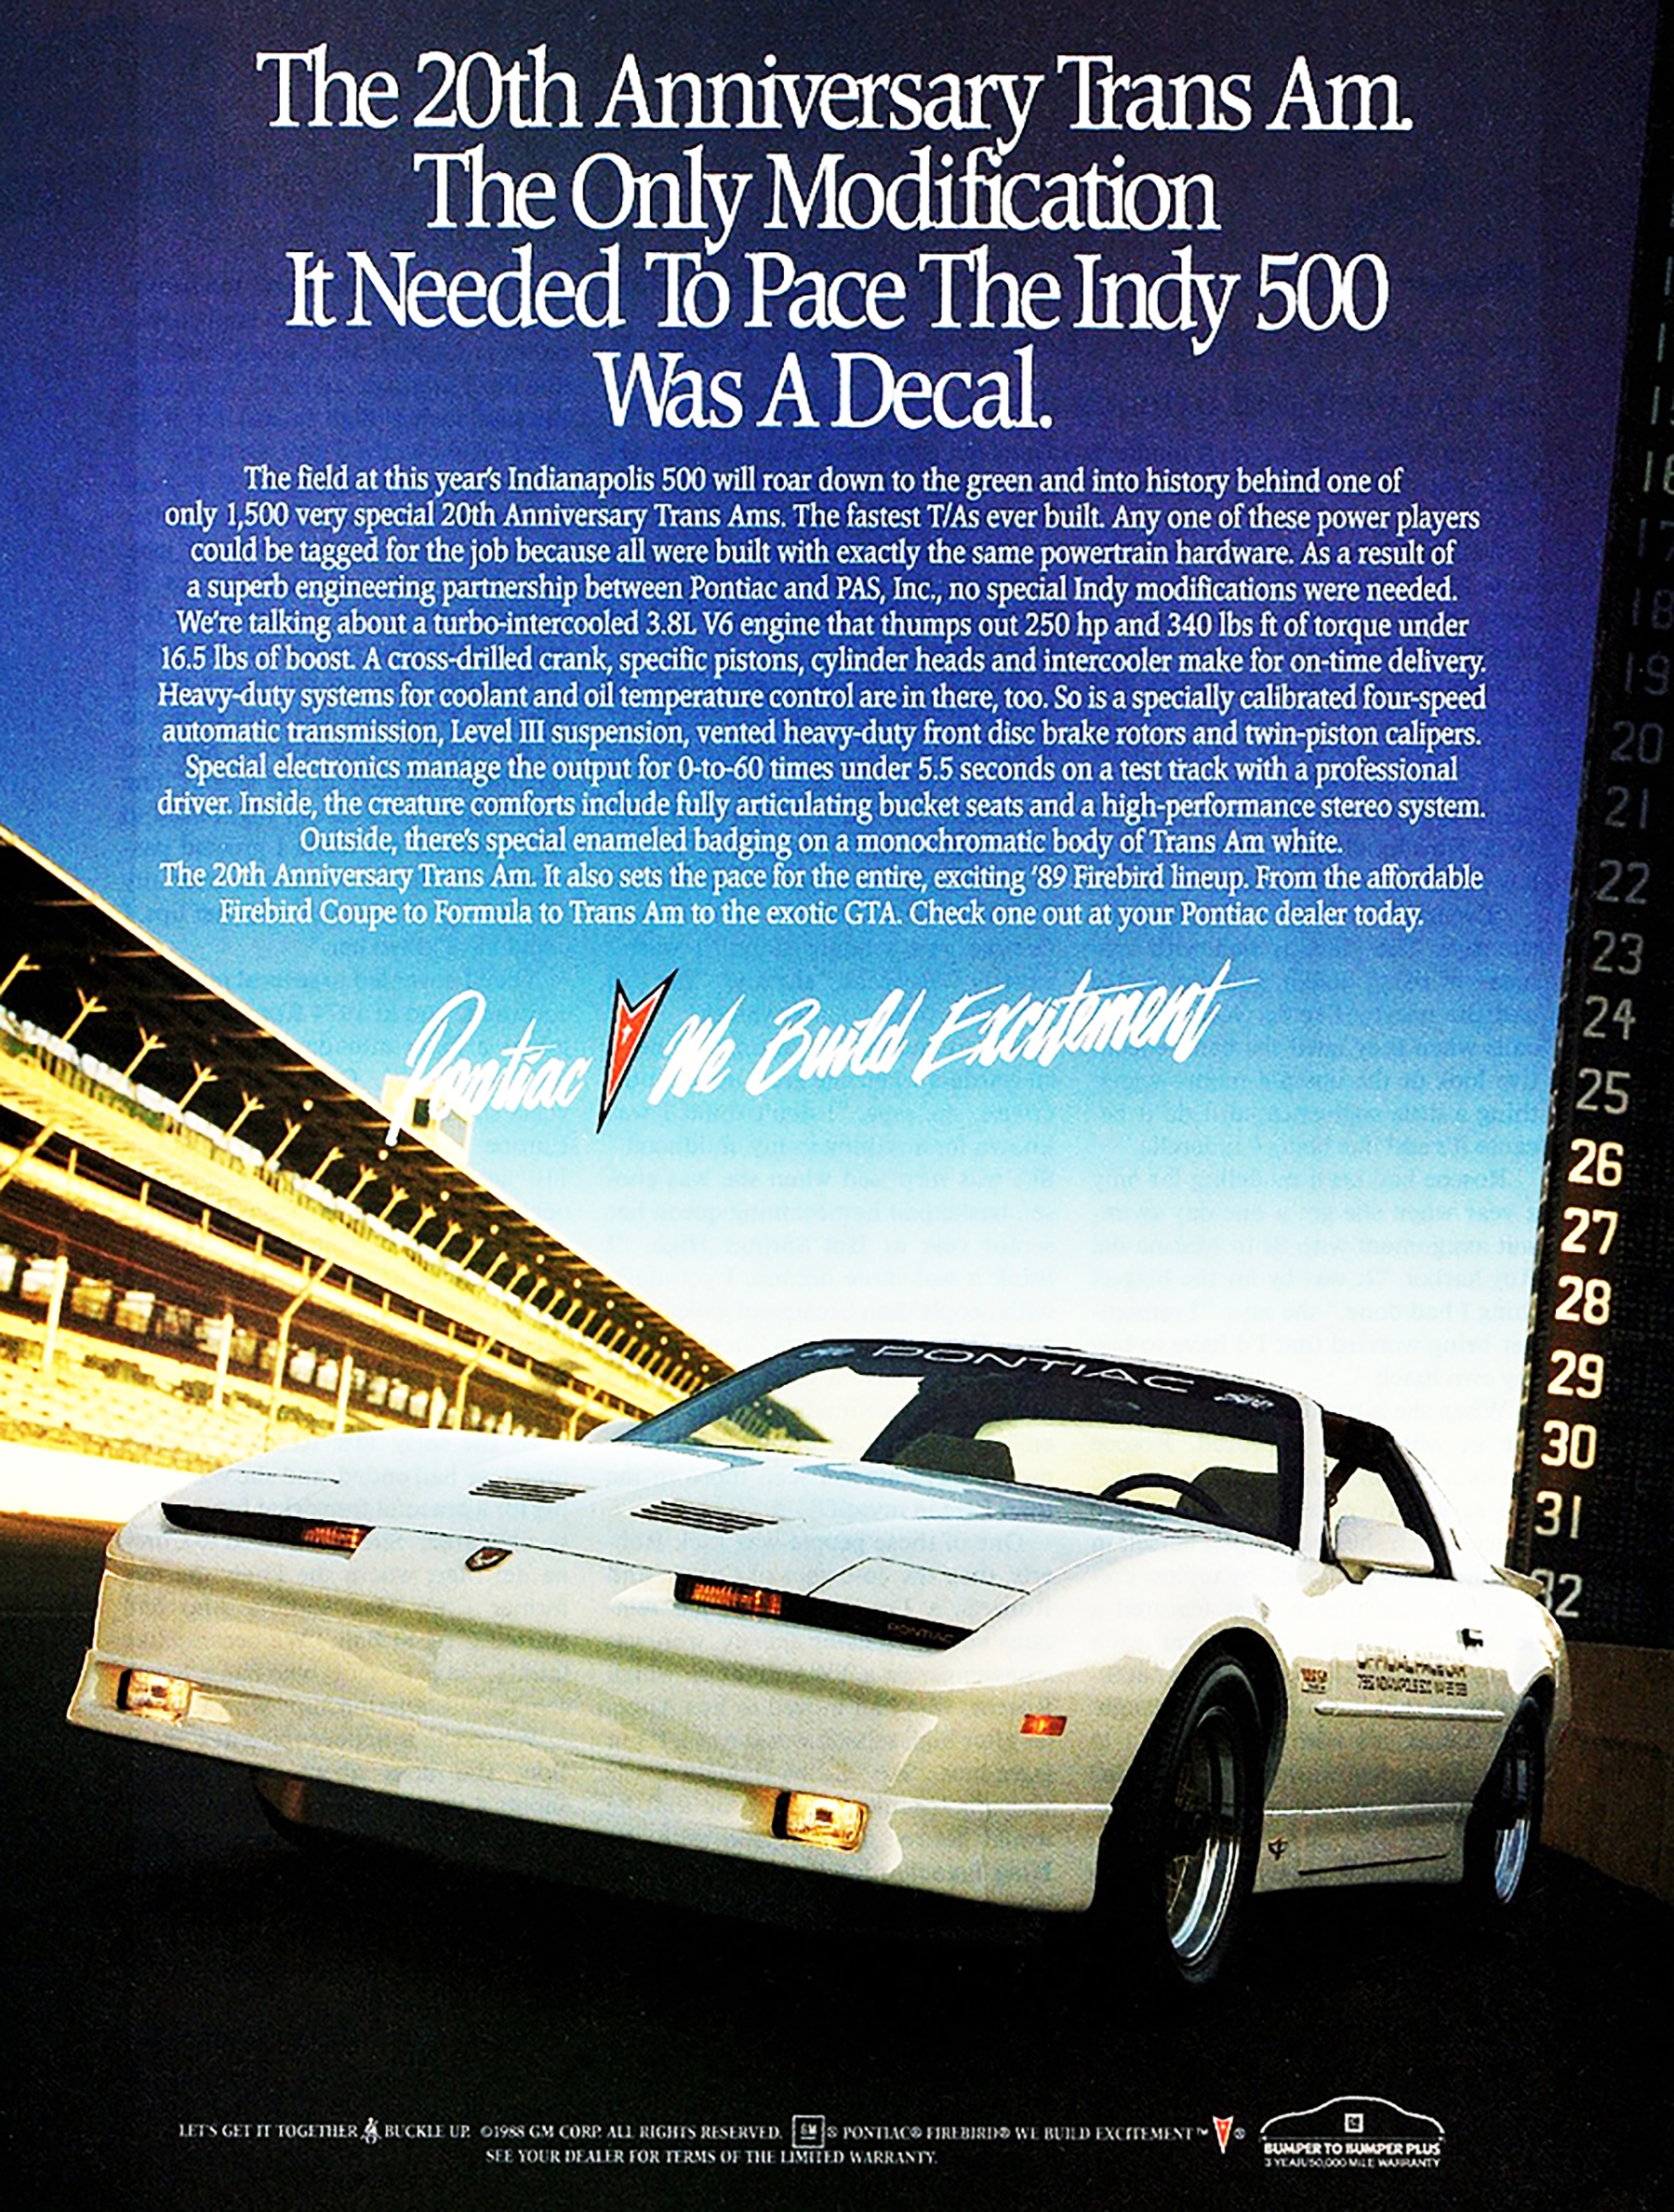 1989 Pontiac Firebird 20th Anniversary Trans Am Ad